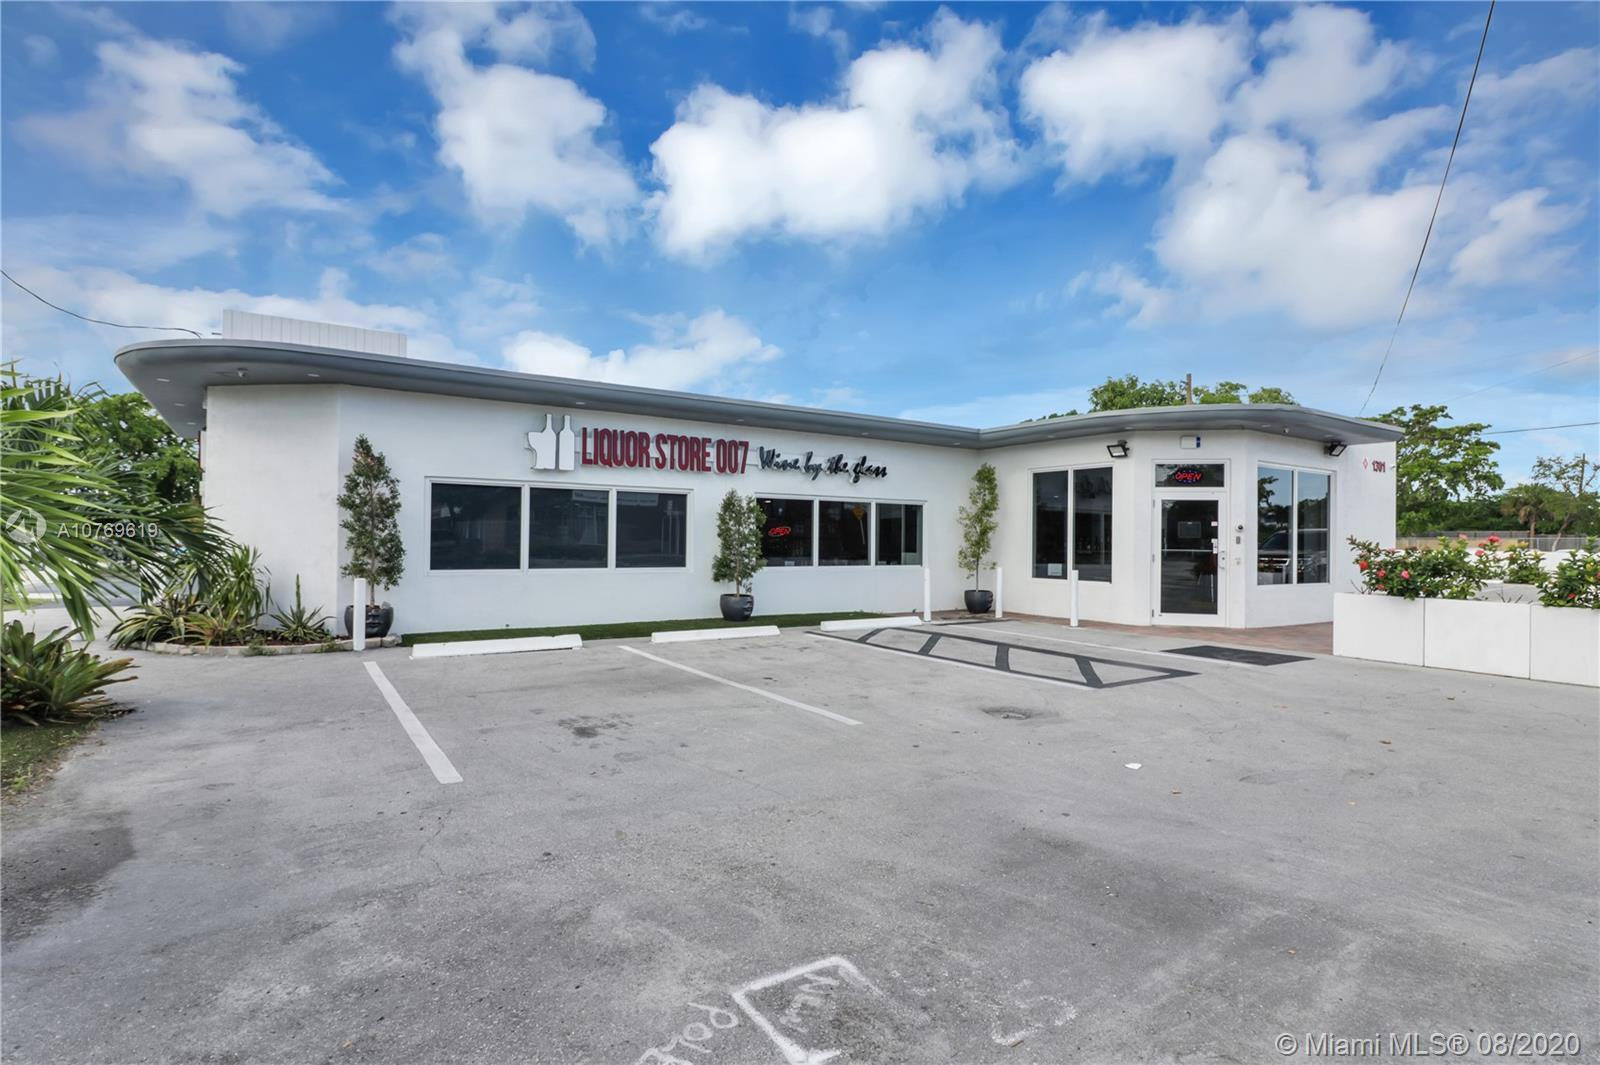 Fabulous opportunity to own a profitable extremely well-established Liquor Store in Ft. Lauderdale w